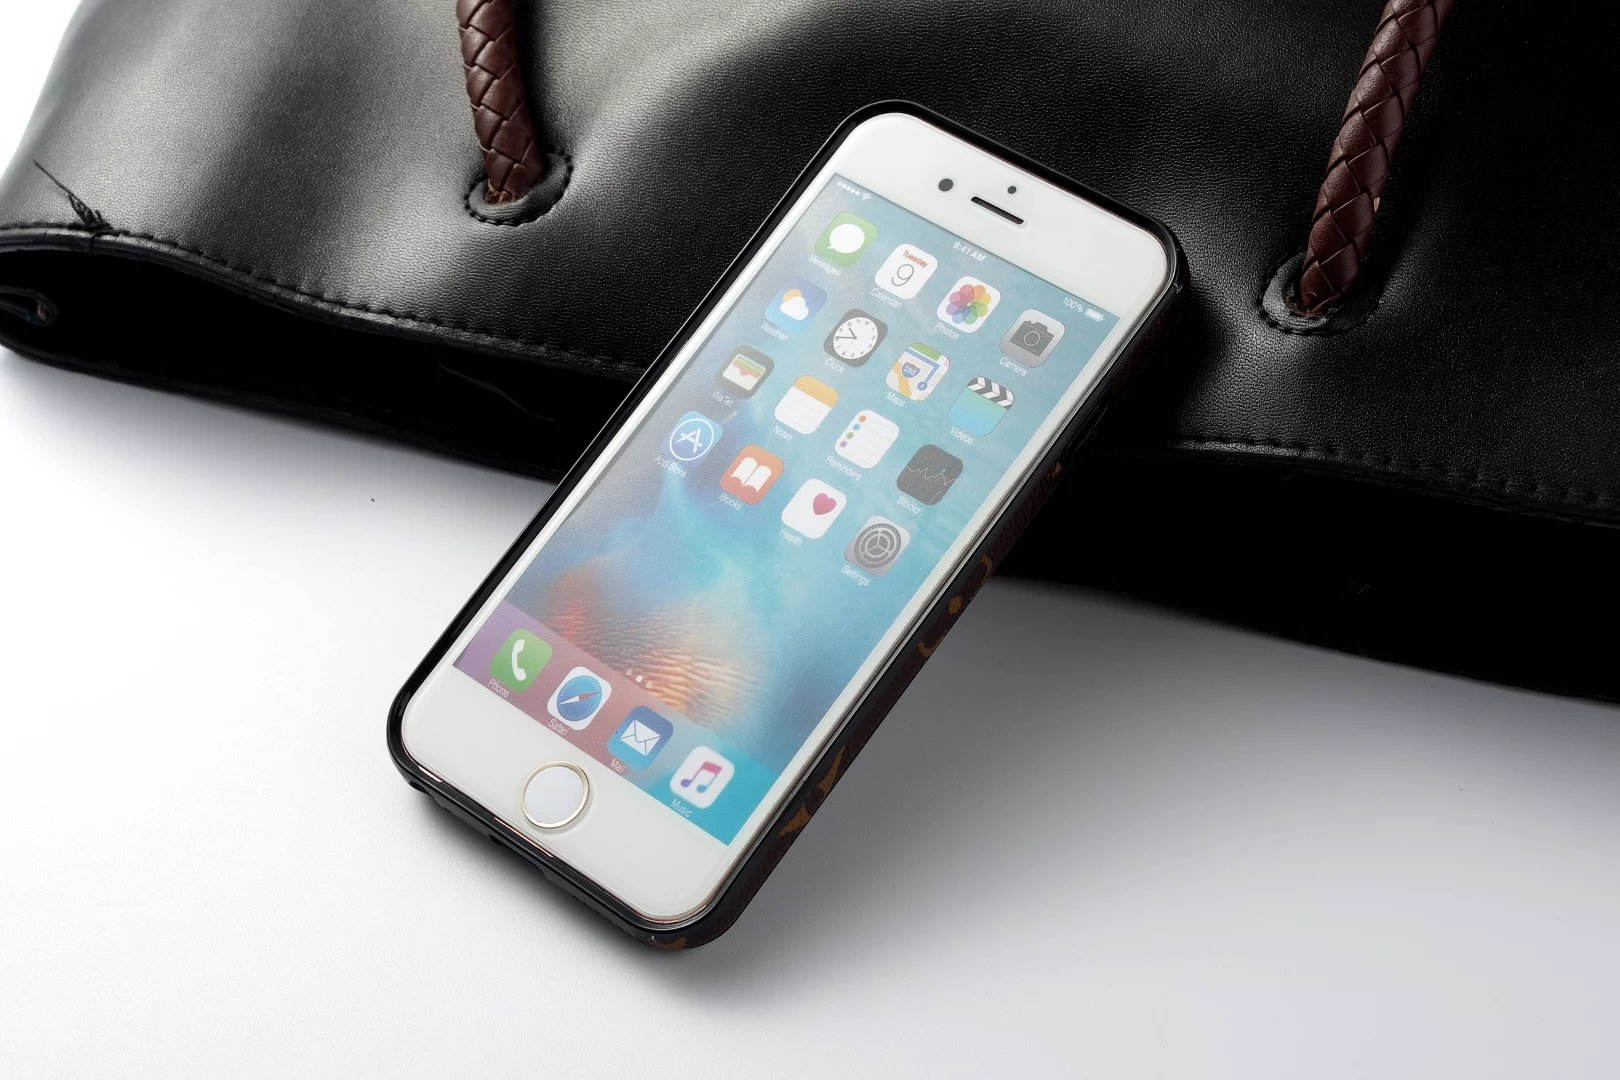 iphone hülle selbst iphone hülle gestalten Louis Vuitton iphone7 Plus hülle hülle für iphone 7 Plus gold cover 7lbst gestalten iphone 6 hüllen iphone 7 Plus lustige hüllen iphone 7 Plus partner hüllen handyhülle iphone 7 Plus c